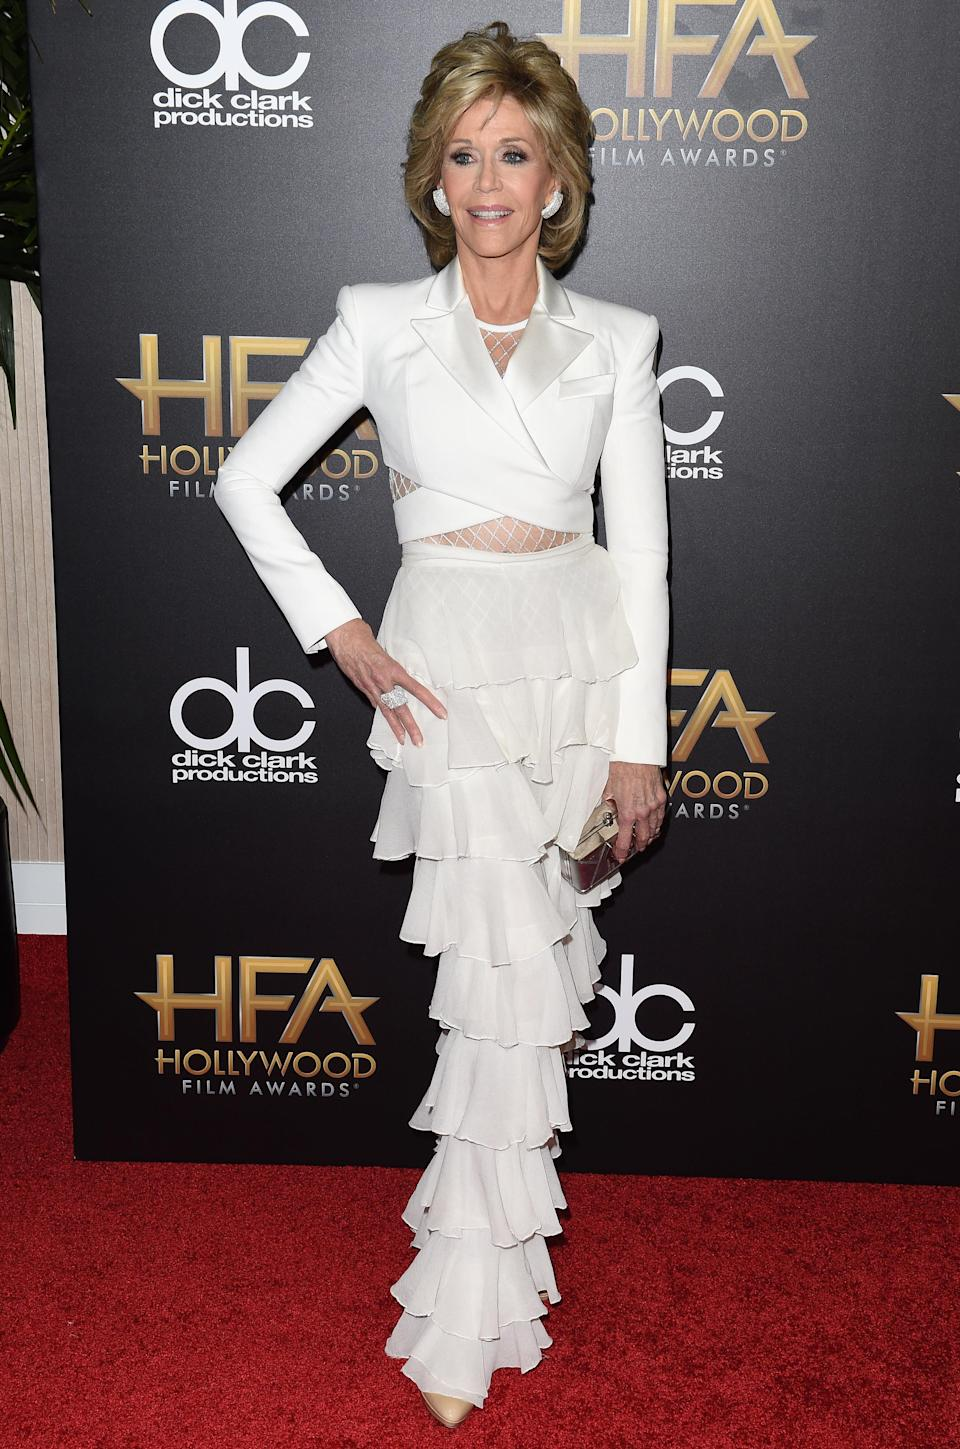 Jane Fonda in Balmain at the Hollywood Film Awards in 2016. (Photo: Getty Images)